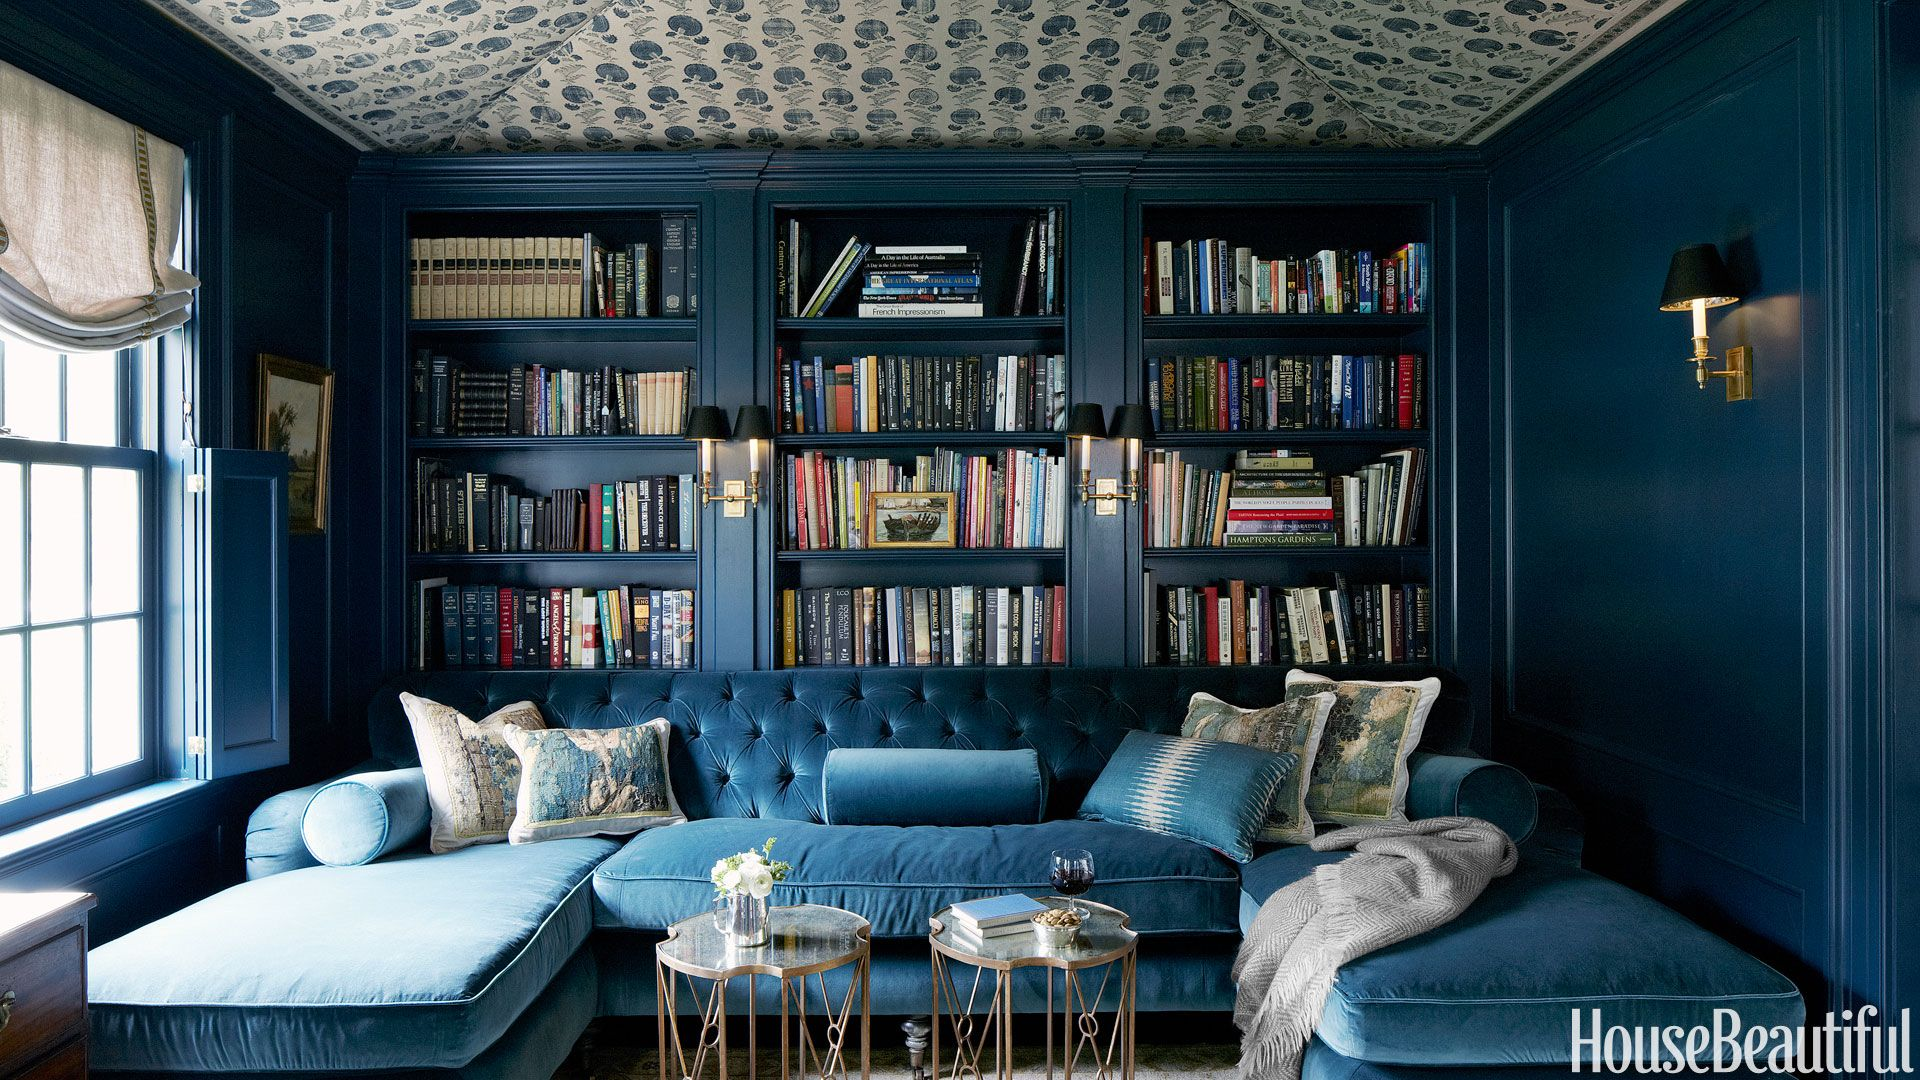 Home Library Design Ideas Pictures of Decor